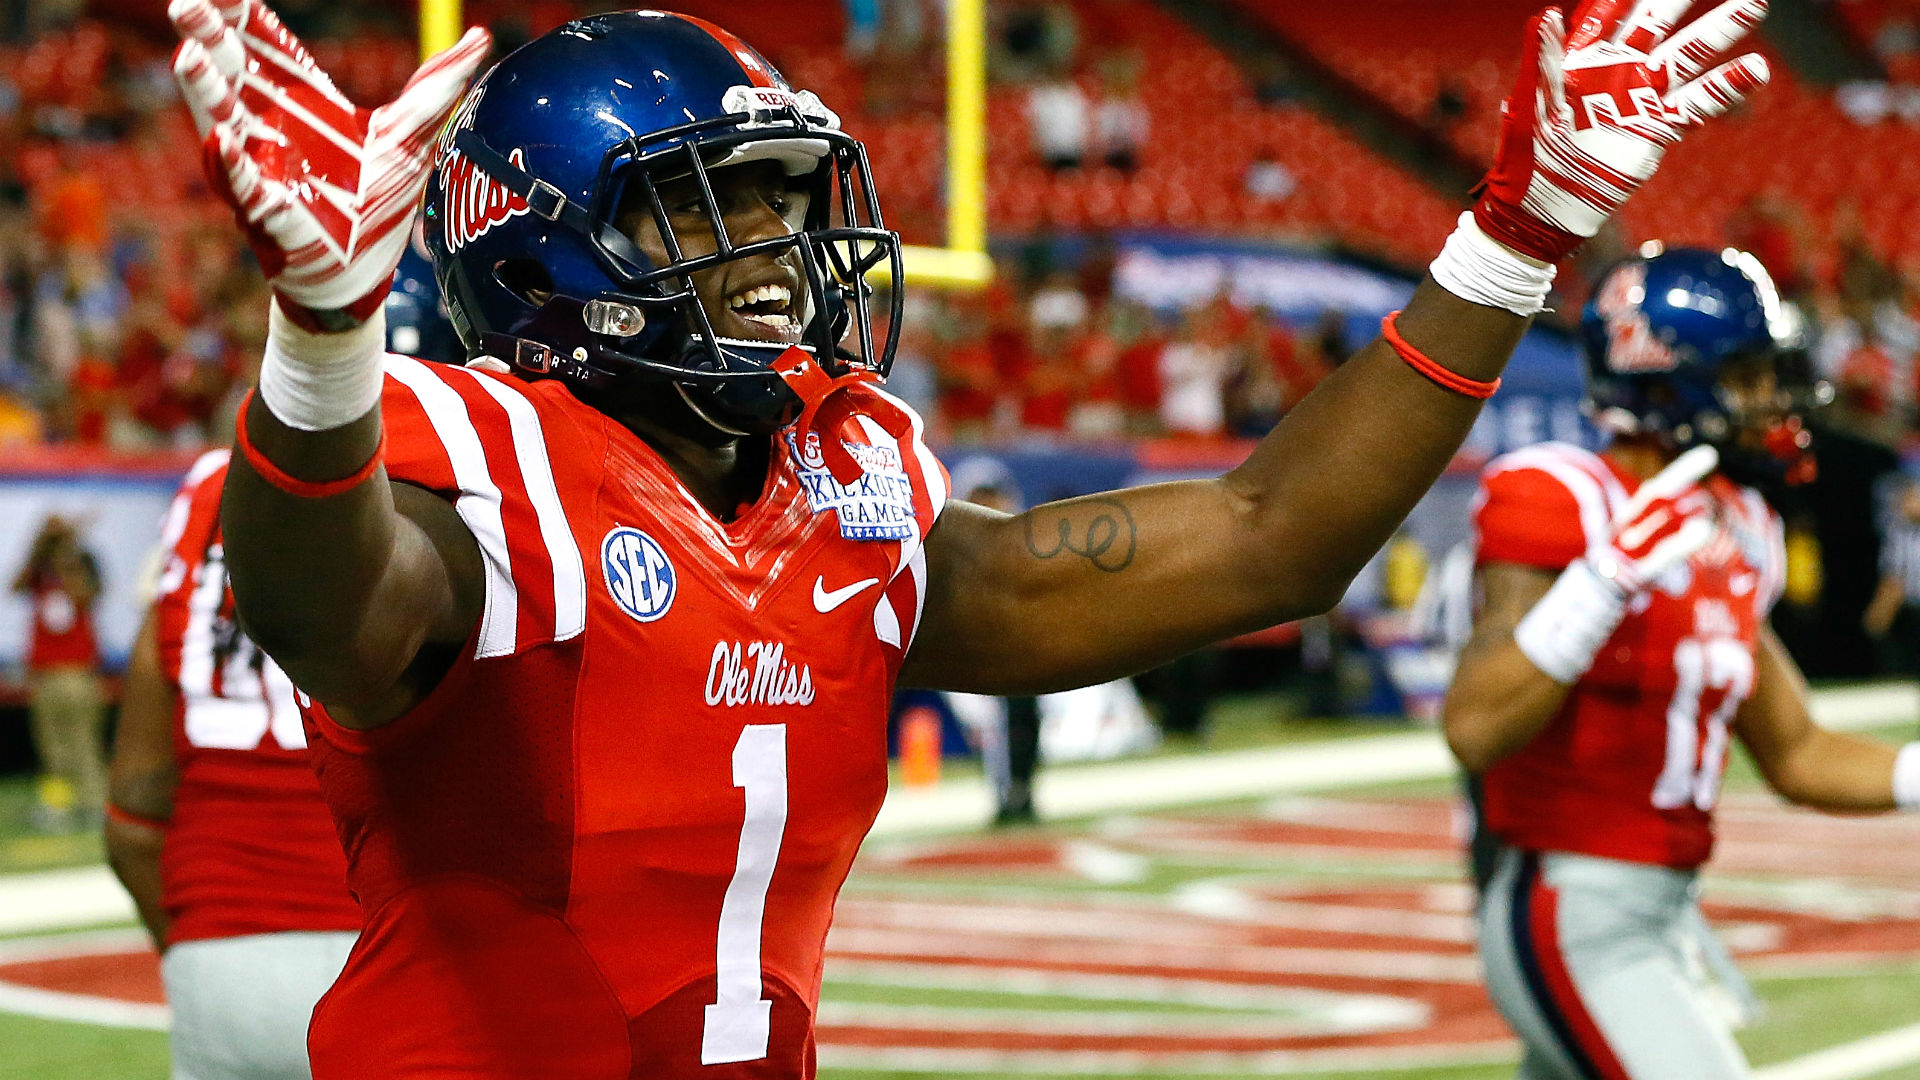 NFL Draft - Will the Dallas Cowboys Draft a Wide Receiver Early?